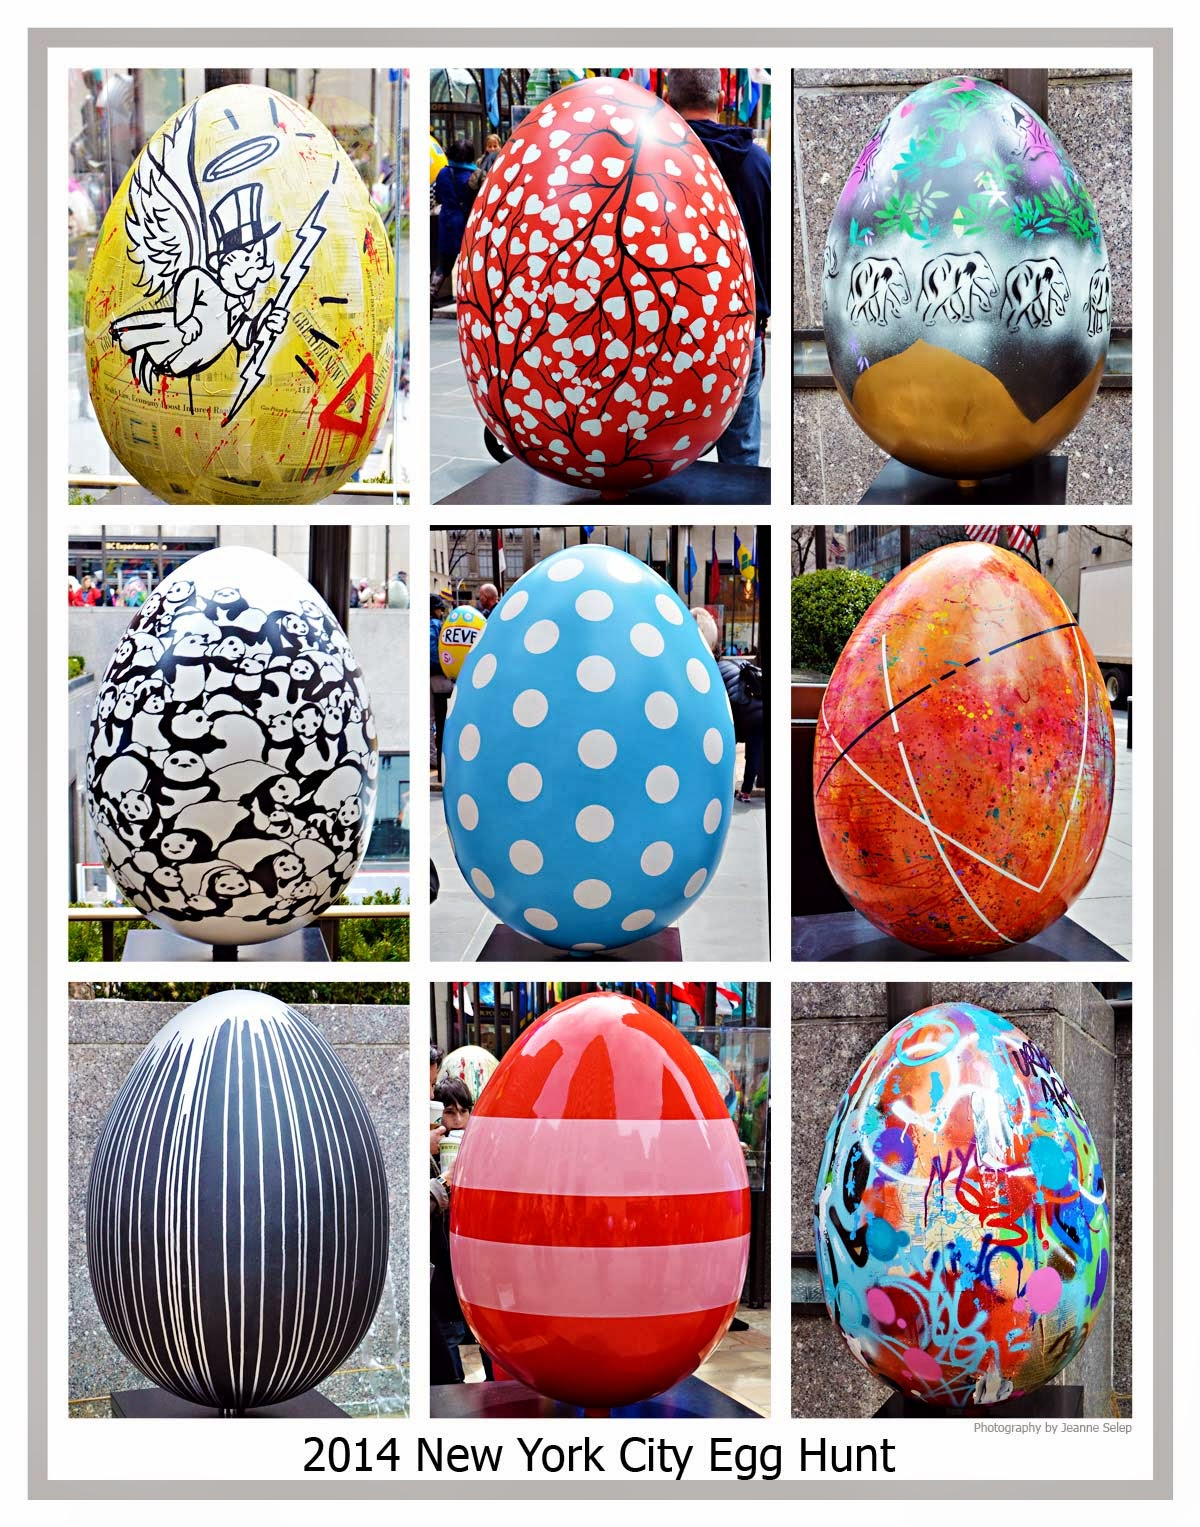 Easter Egg hunt 2014 Faberge New York City NYC Egg Hunt